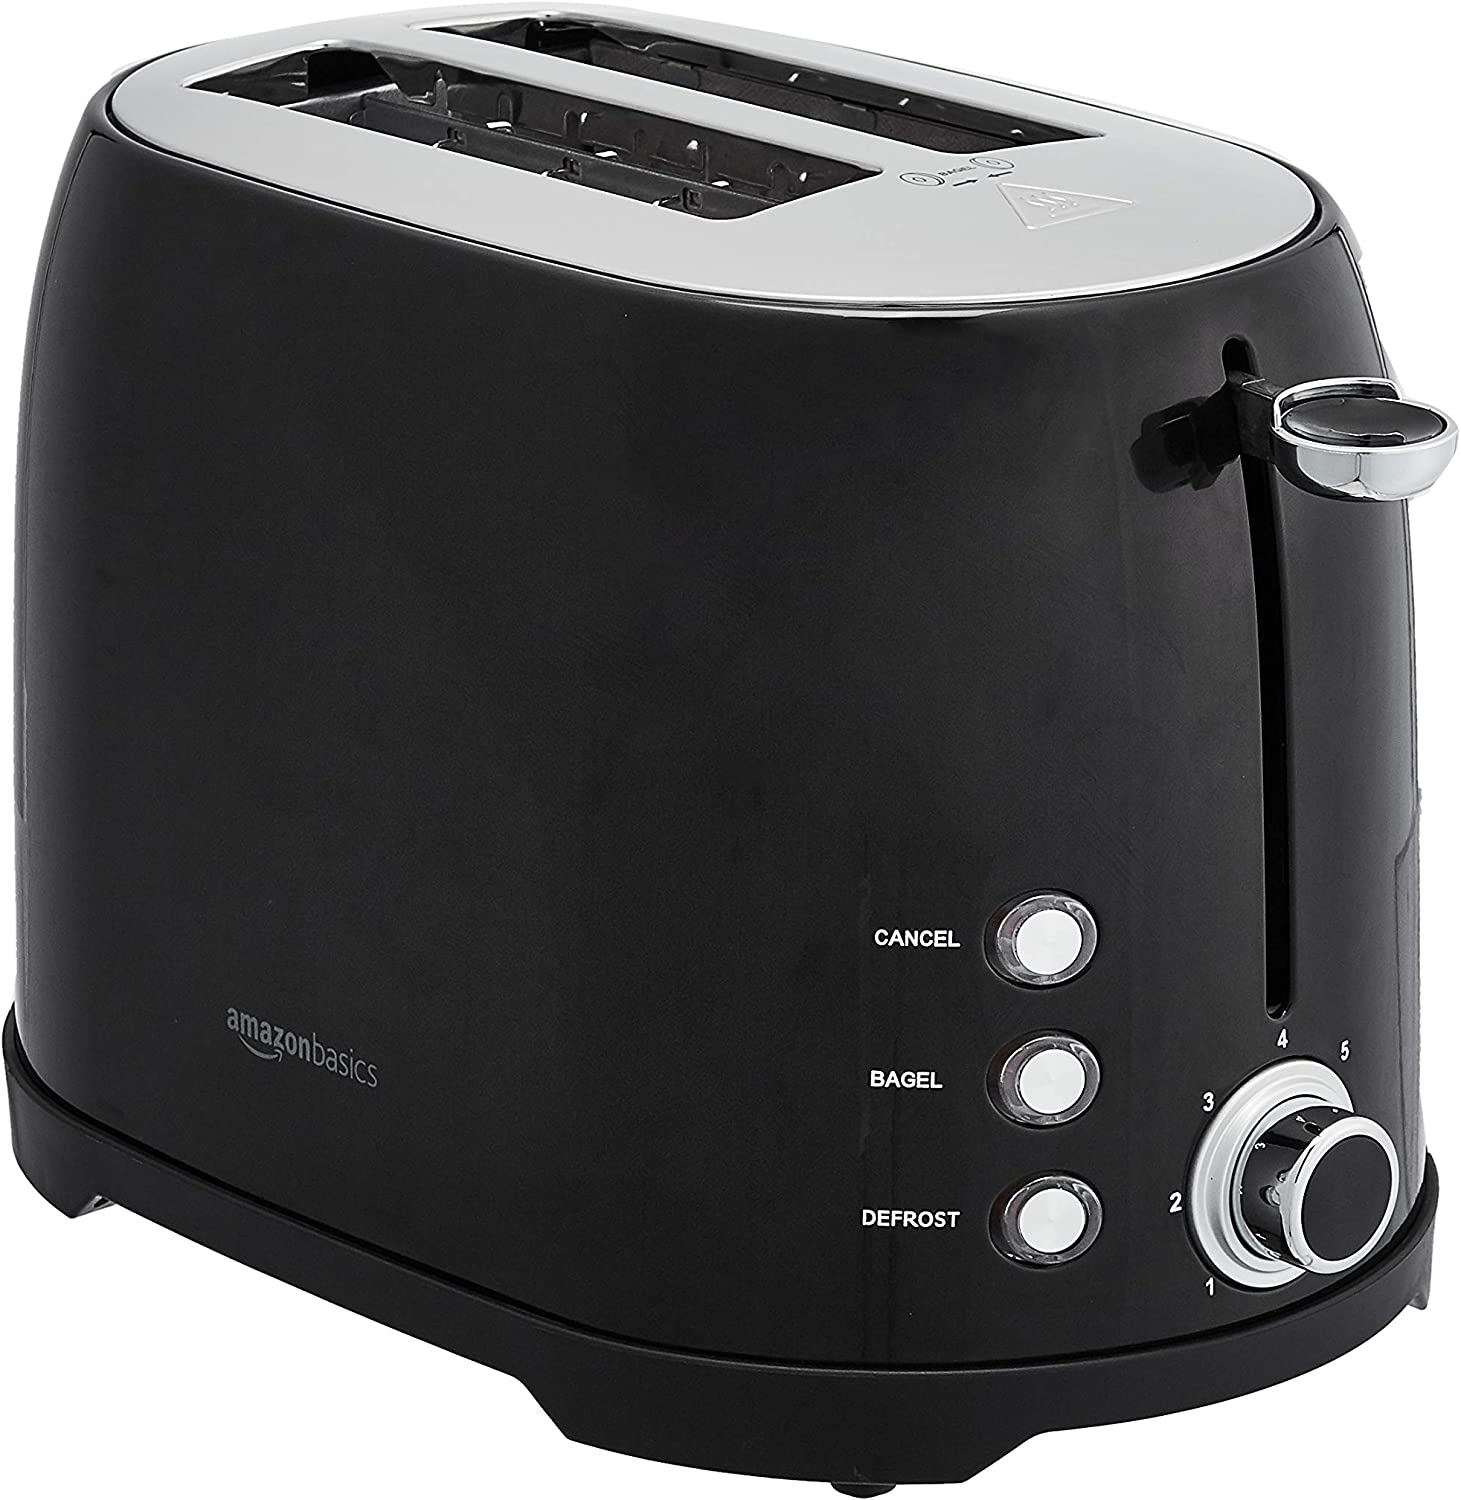 AmazonBasics 2-Slot Toaster, Black